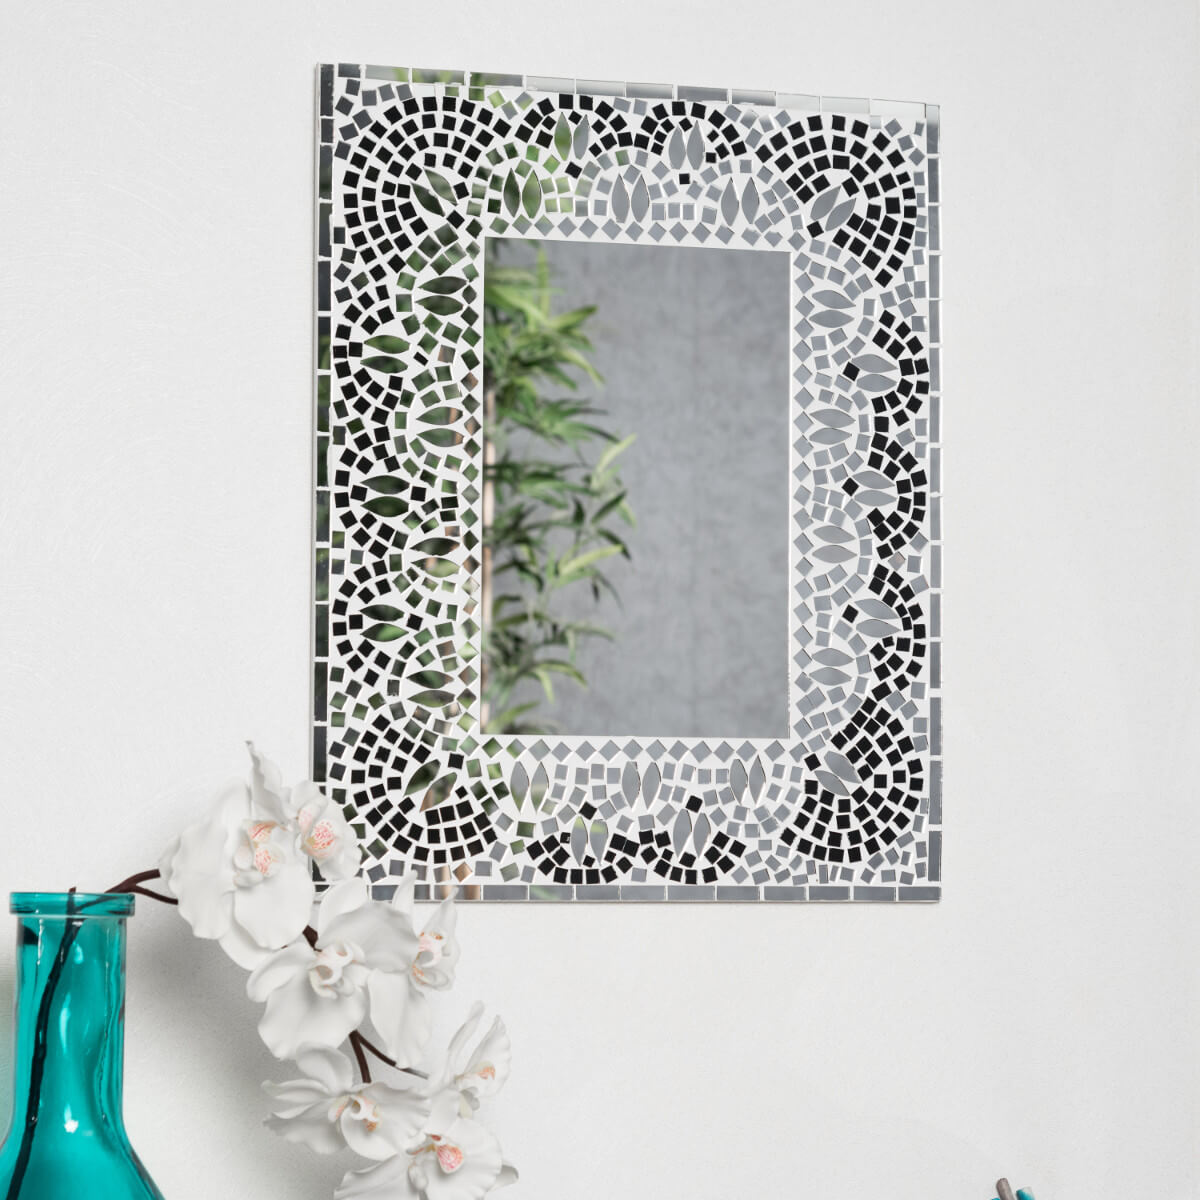 Miroir mosaique design noir et blanc 40cm x 50cm salon chambre for Miroir design salon